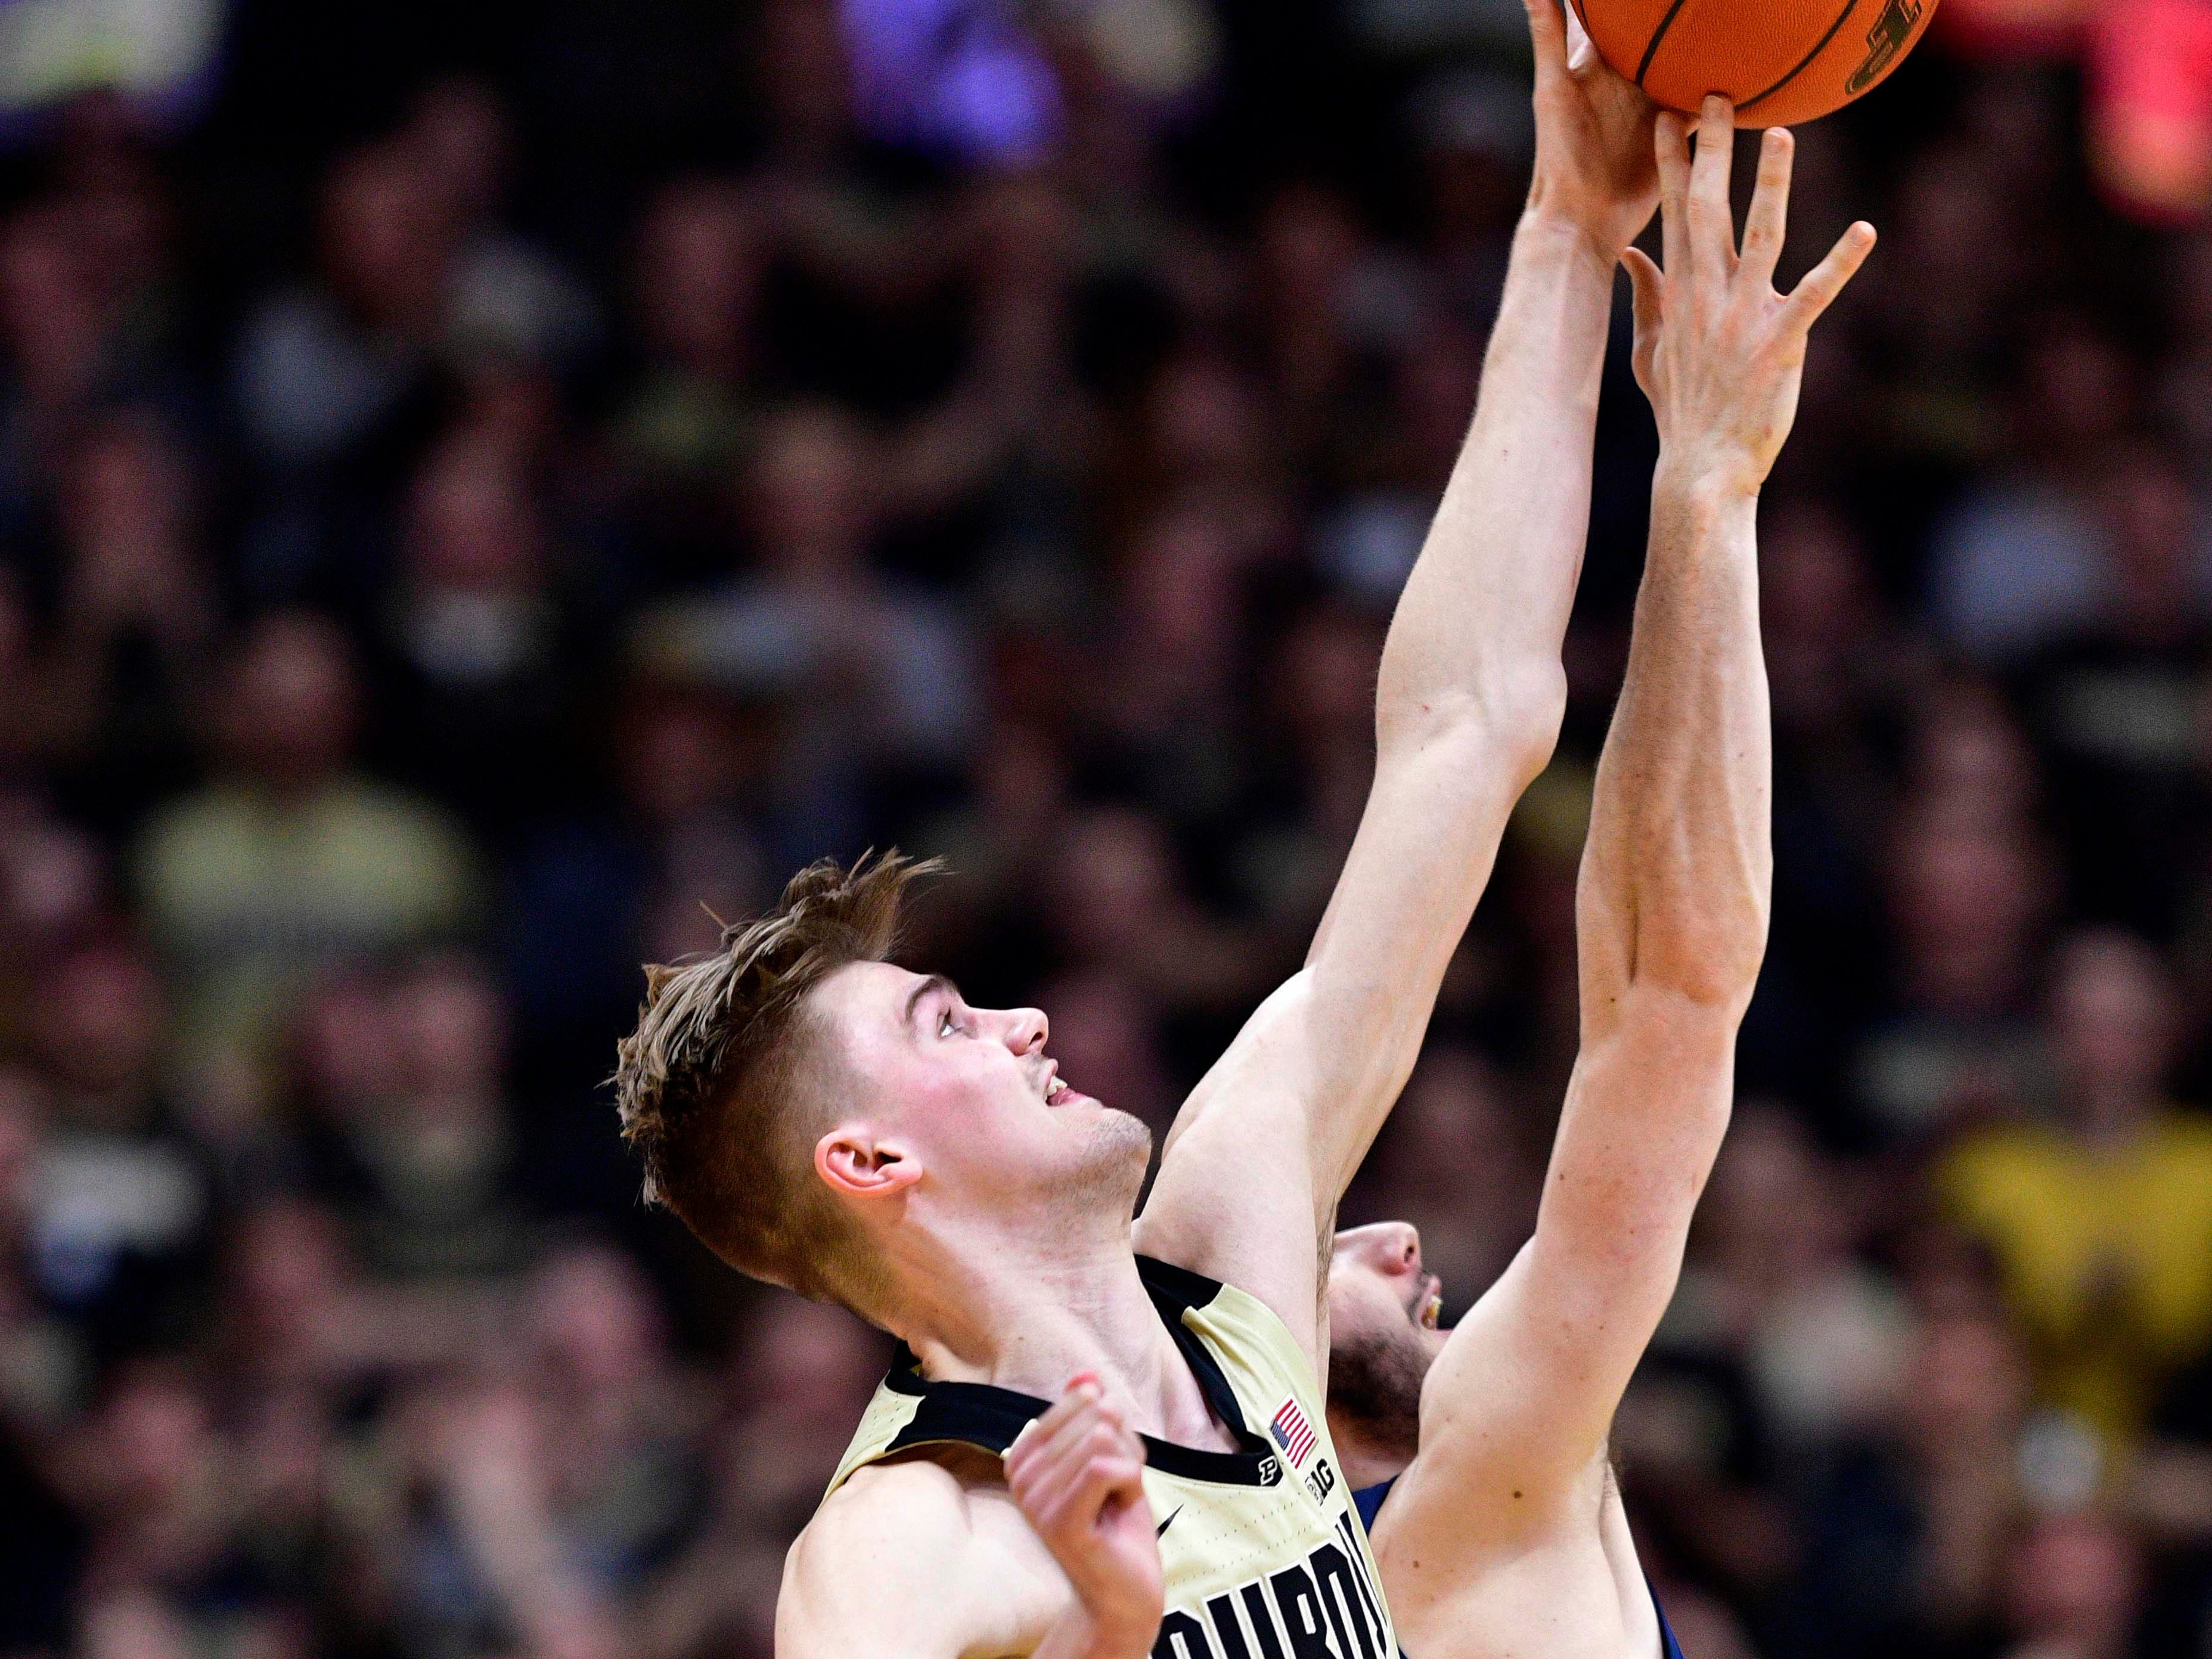 Feb 27, 2019; West Lafayette, IN, USA; Purdue Boilermakers center Matt Haarms (32) wins the tip off at the beginning of the game against the Illinois Fighting Illini at Mackey Arena. Mandatory Credit: Marc Lebryk-USA TODAY Sports